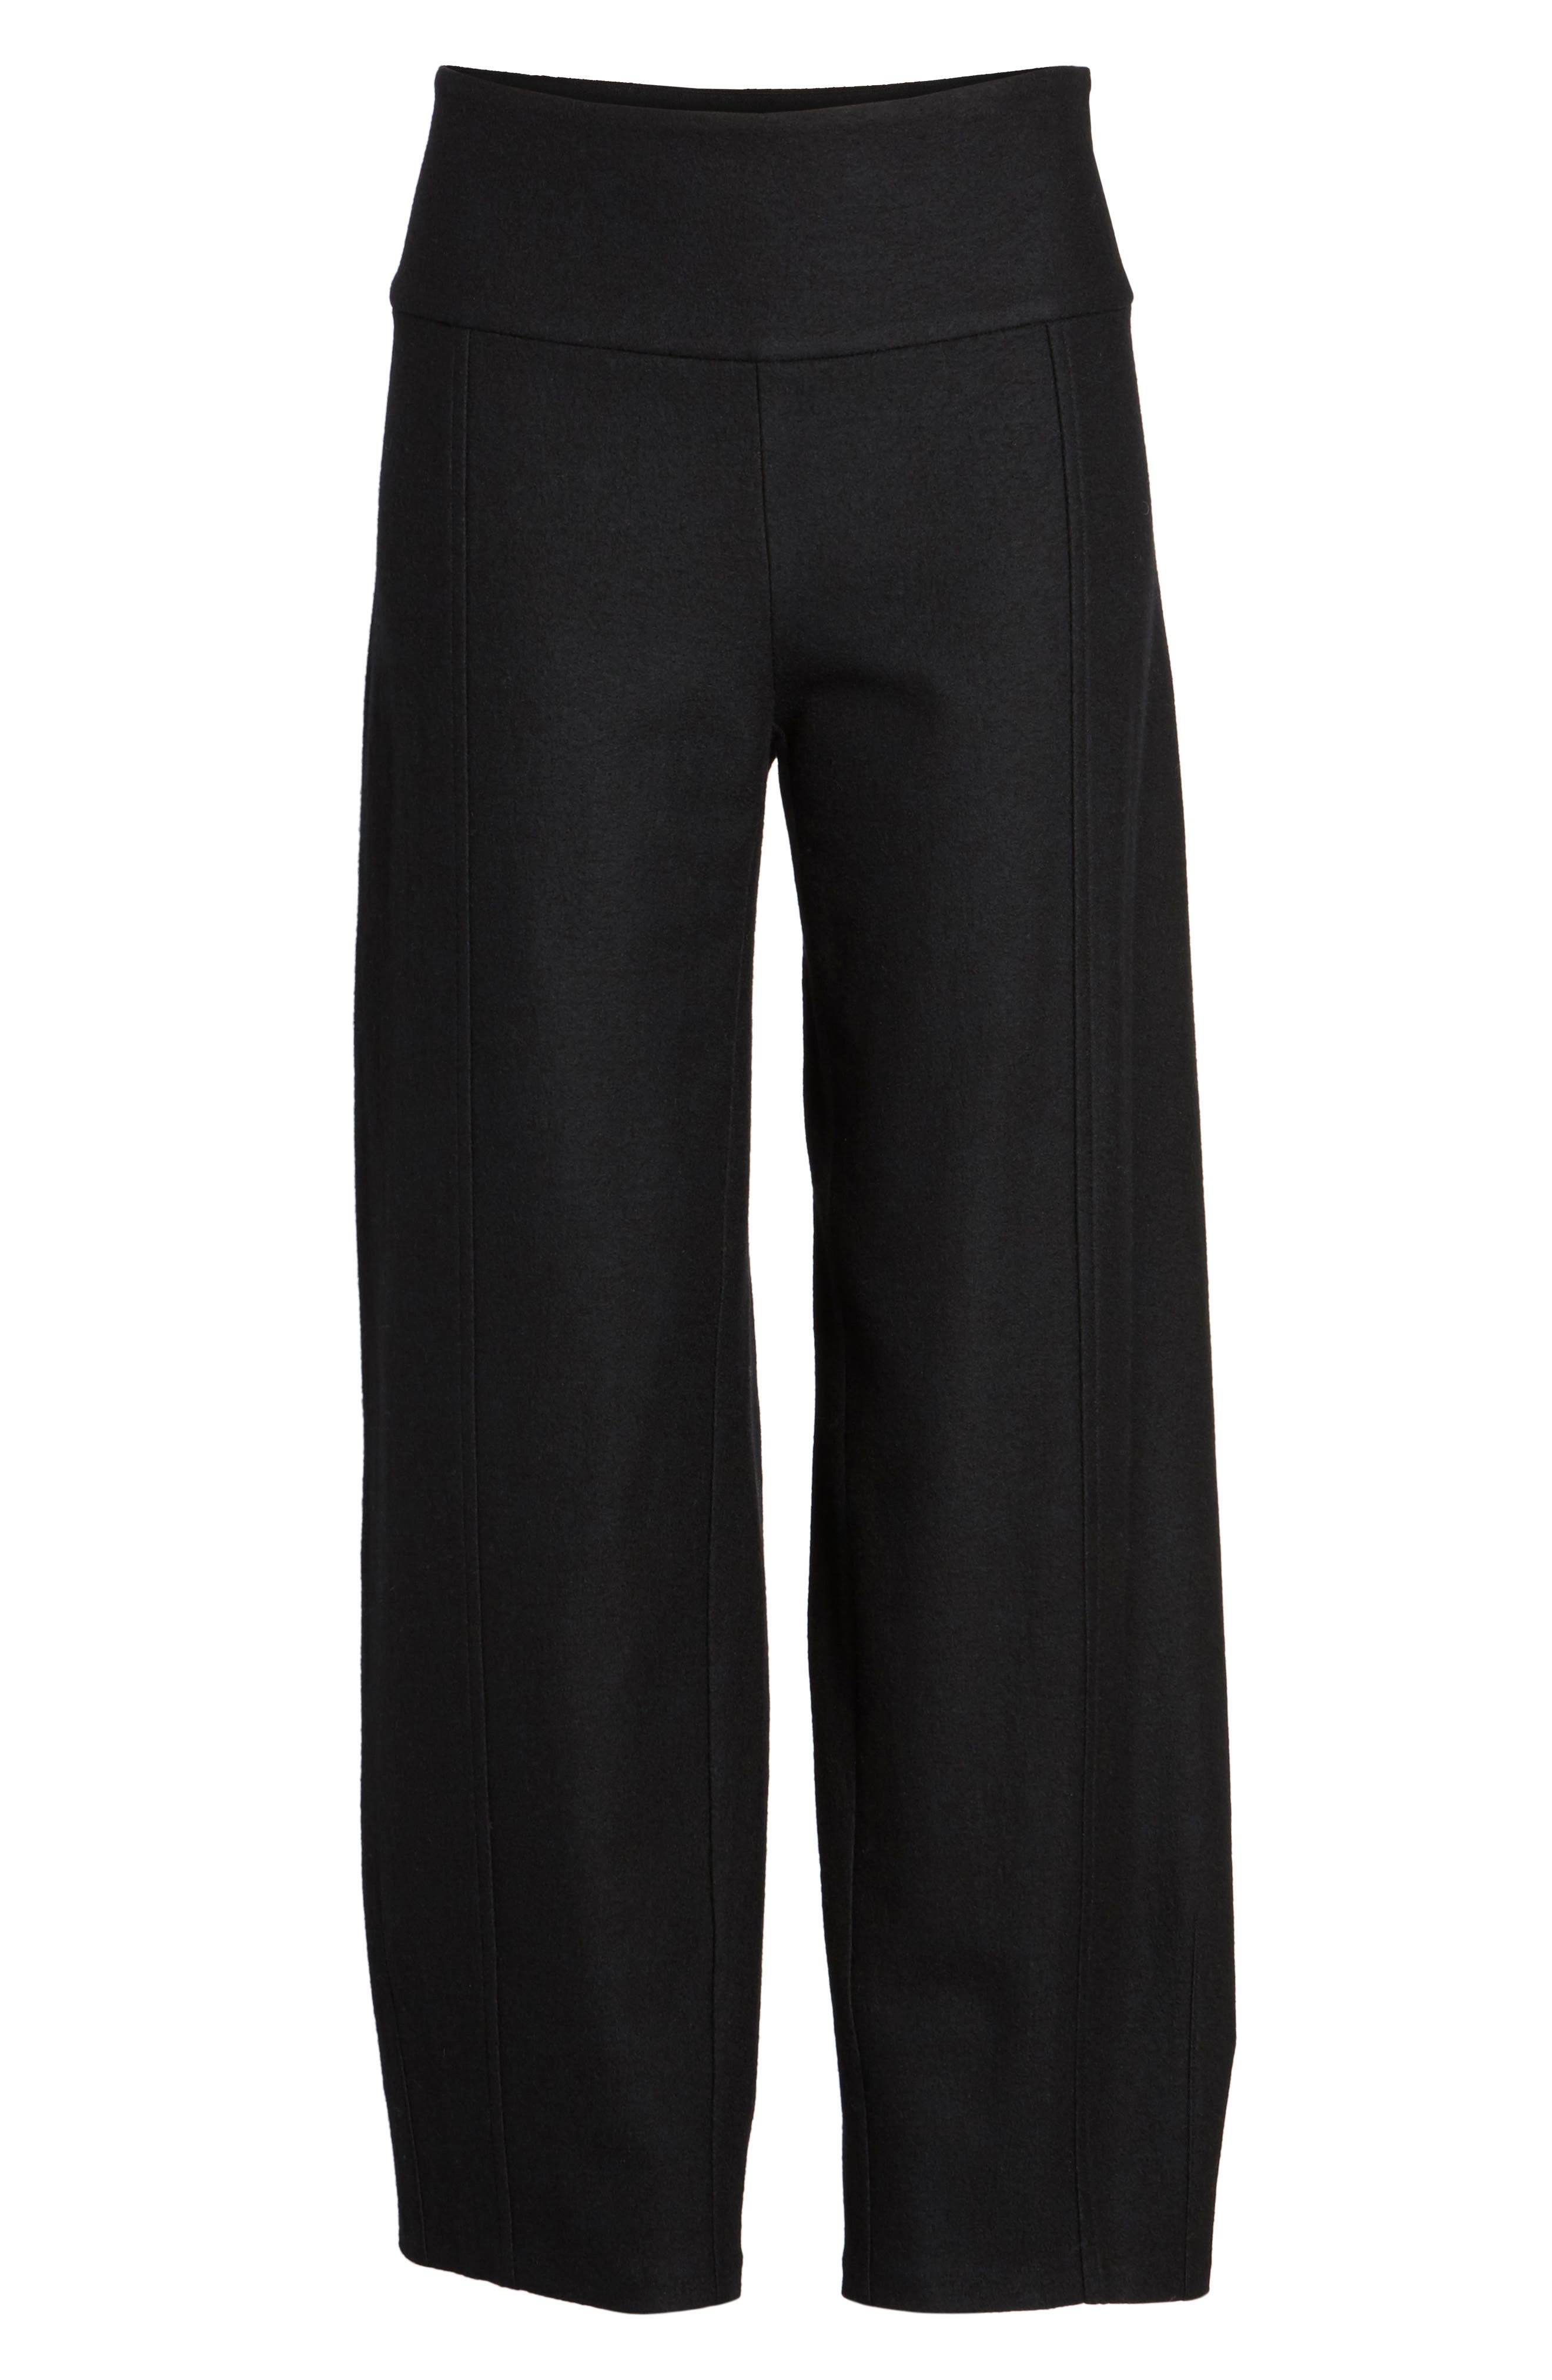 Wool Ankle Pants,                             Alternate thumbnail 6, color,                             001